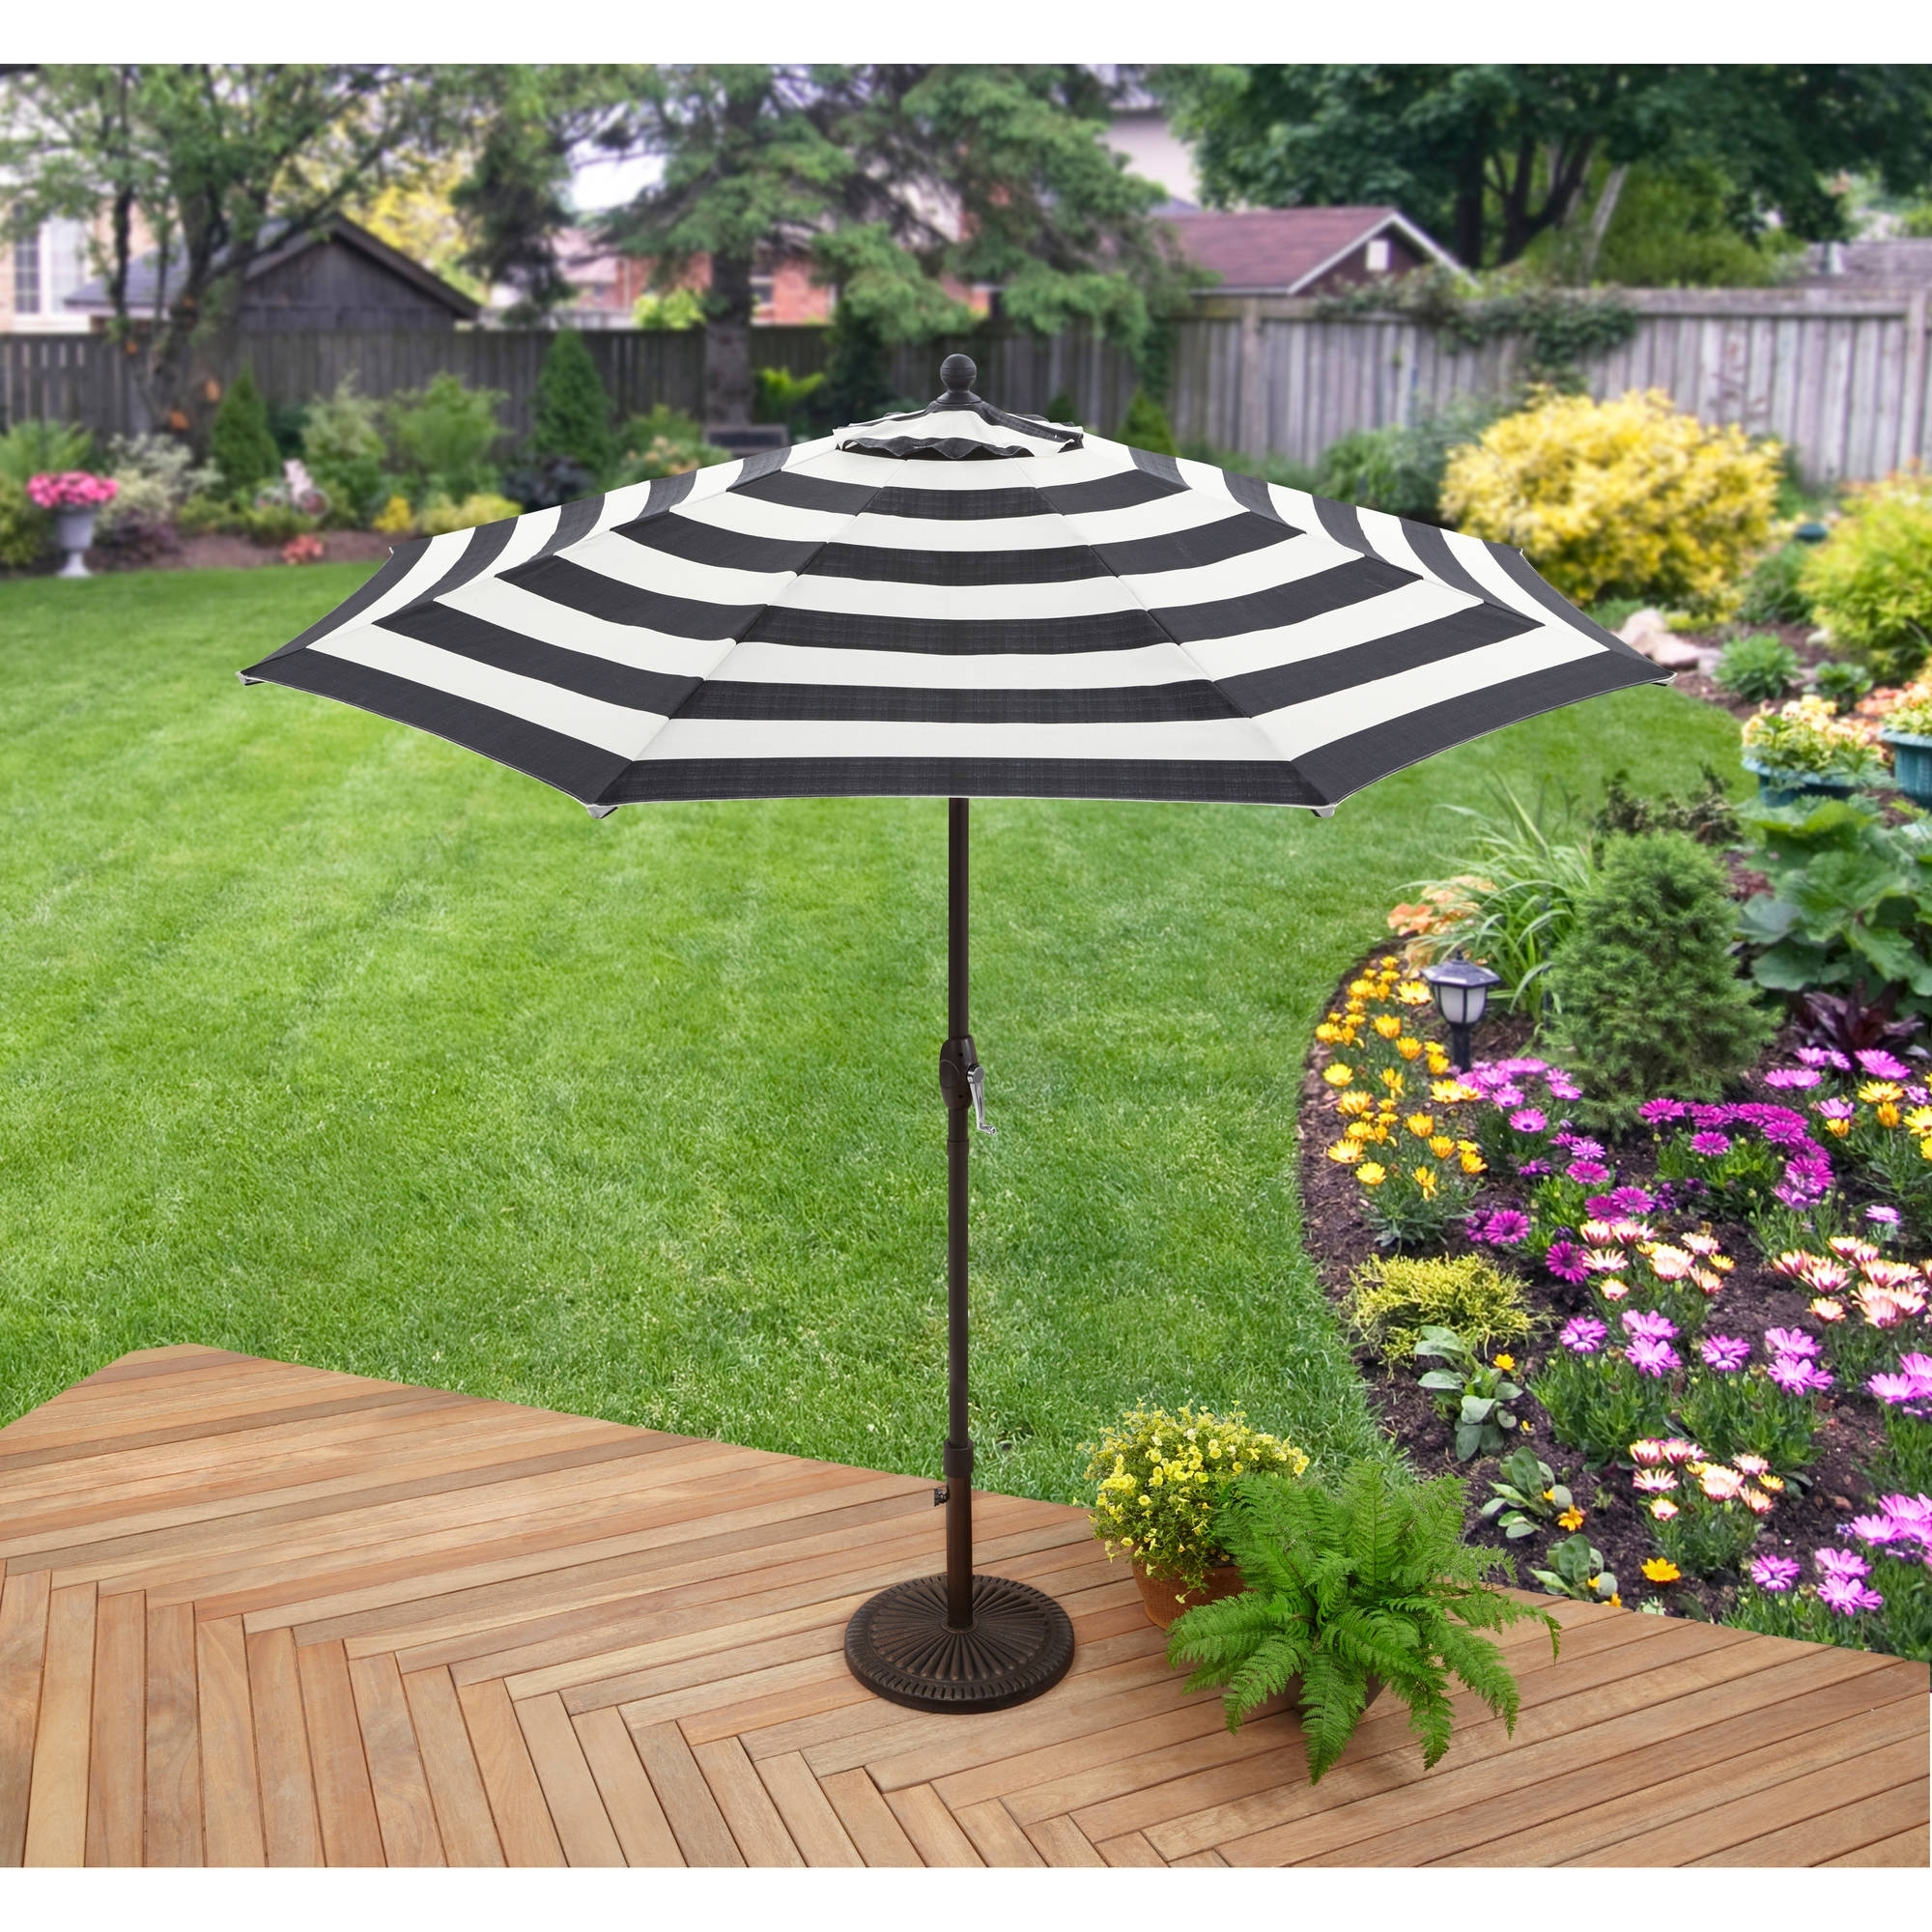 Walmart Umbrellas Patio With Well Liked Better Homes And Gardens 9' Market Umbrella, Cabana Stripe – Walmart (View 7 of 20)